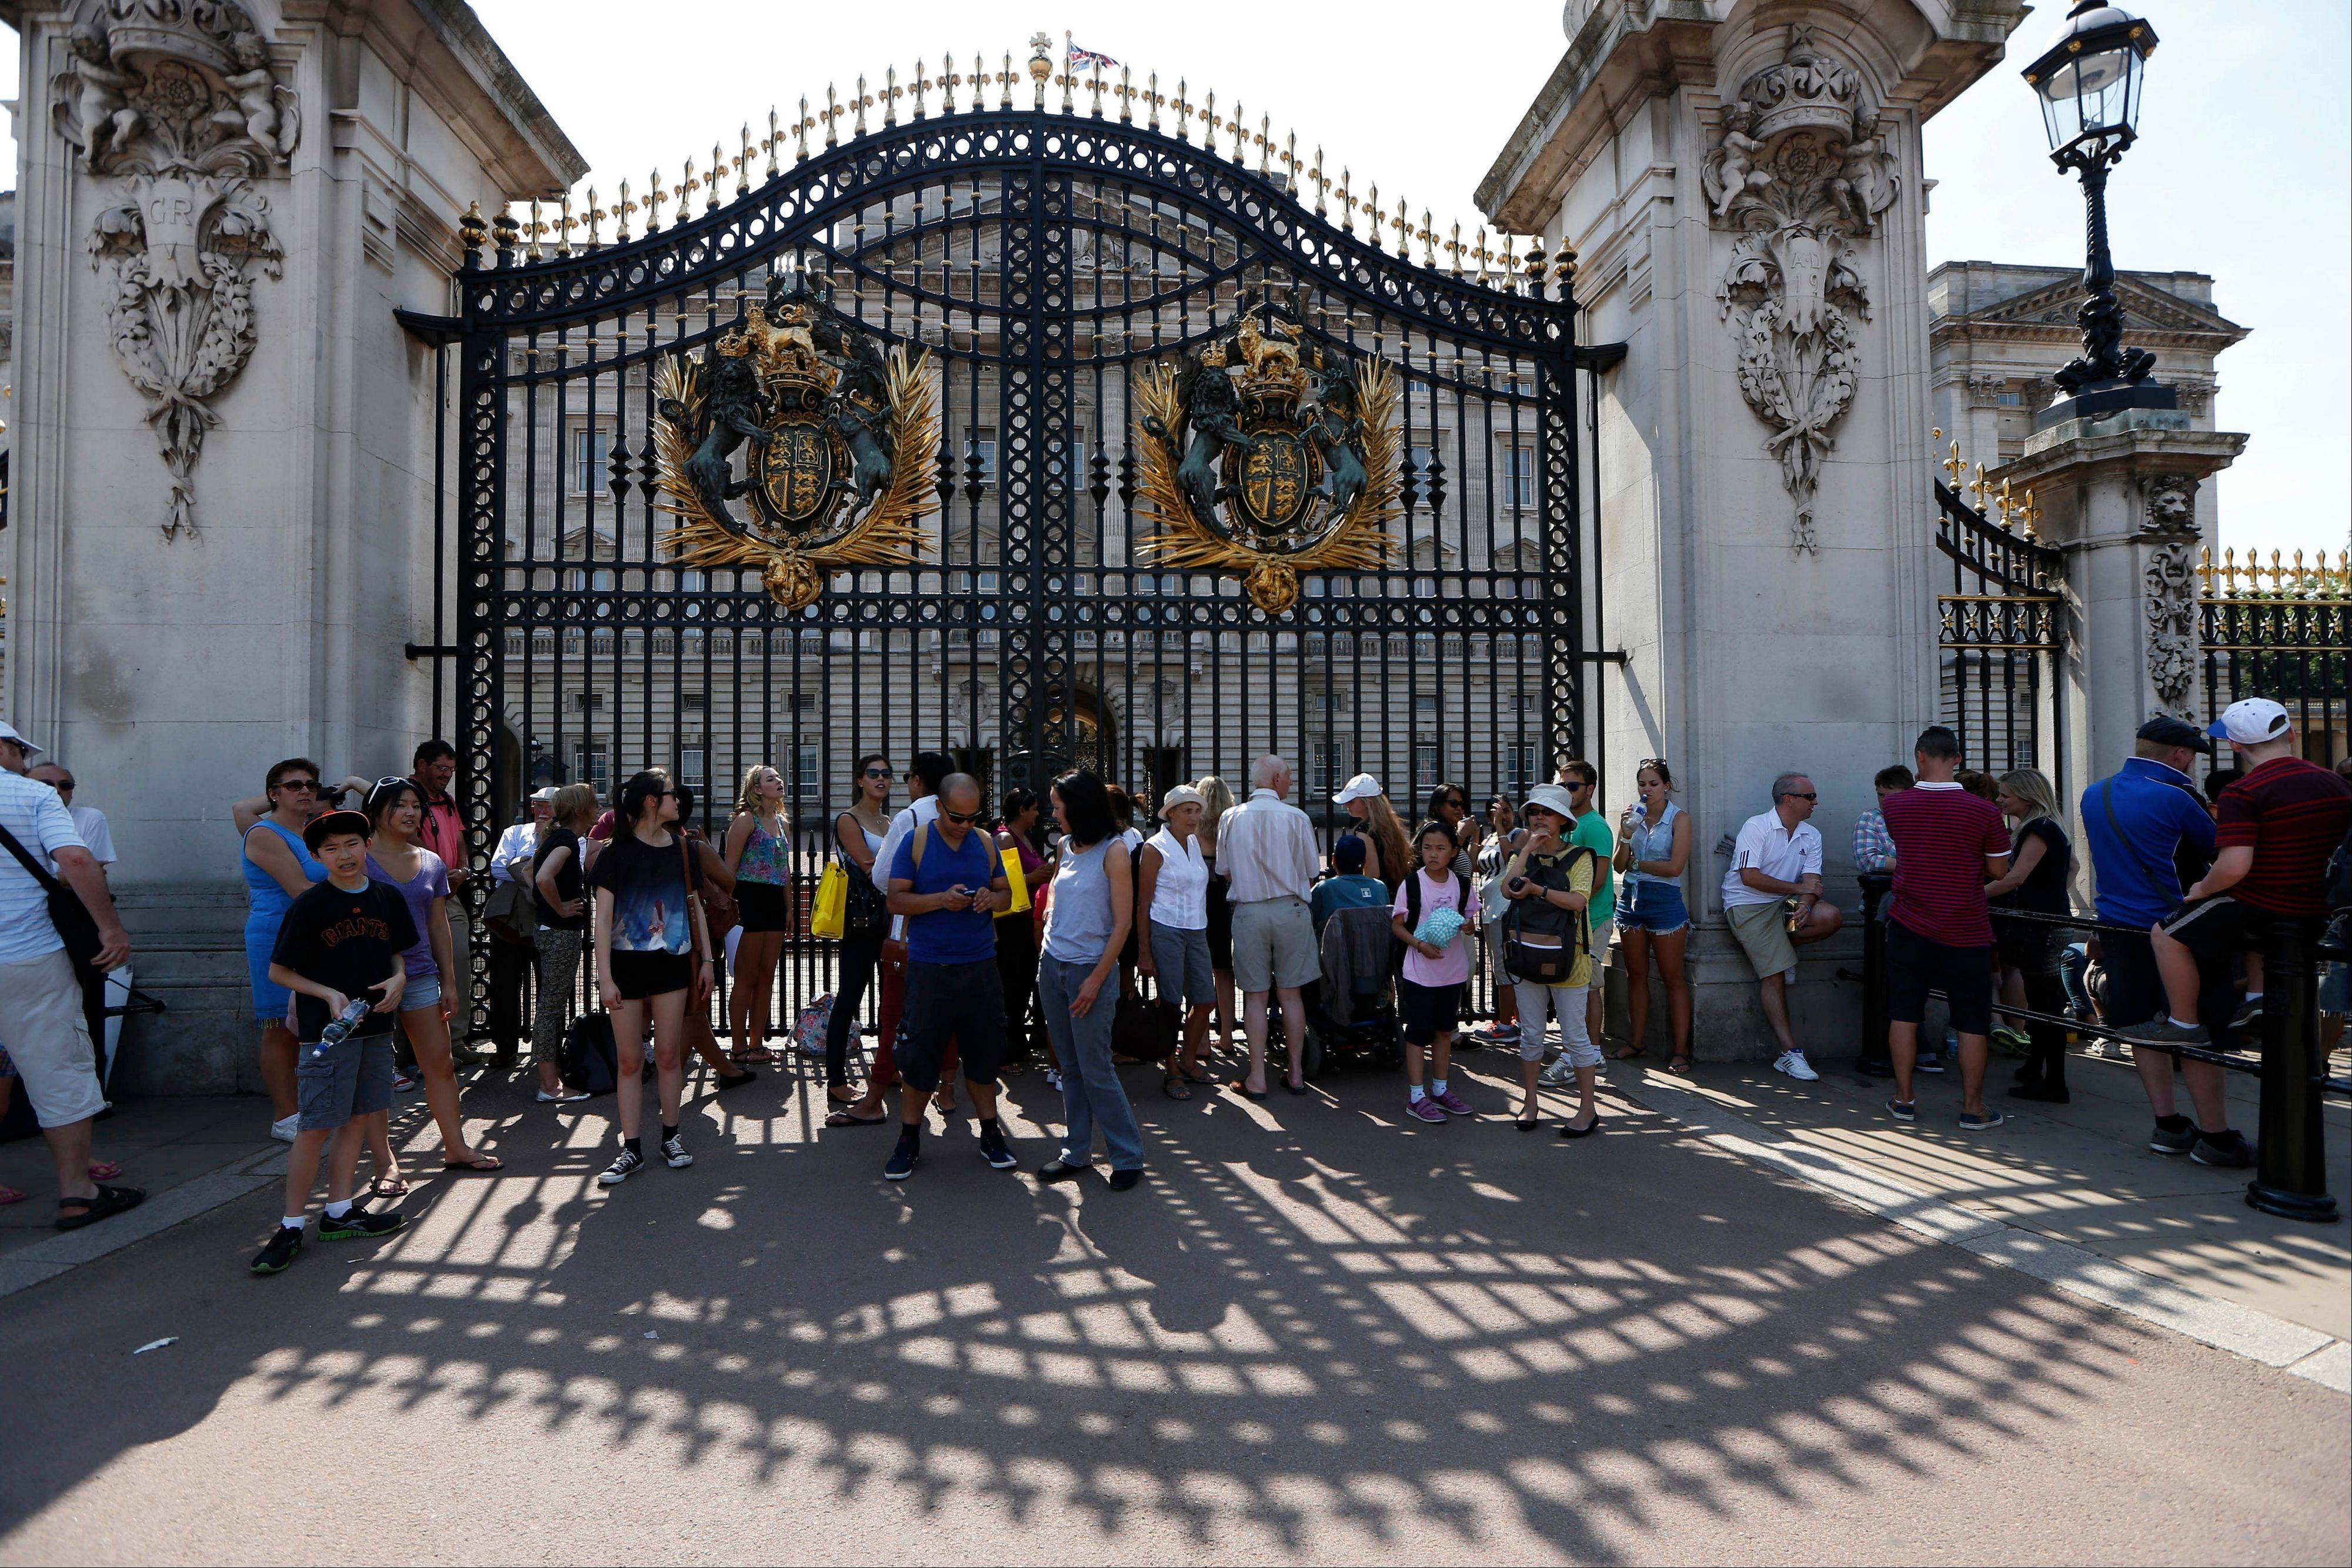 People who waited hours and hours on the hottest day of the year outside Buckingham Palace in London got the payoff when palace officials posted a written notice of the royal baby boy's birth on an easel.